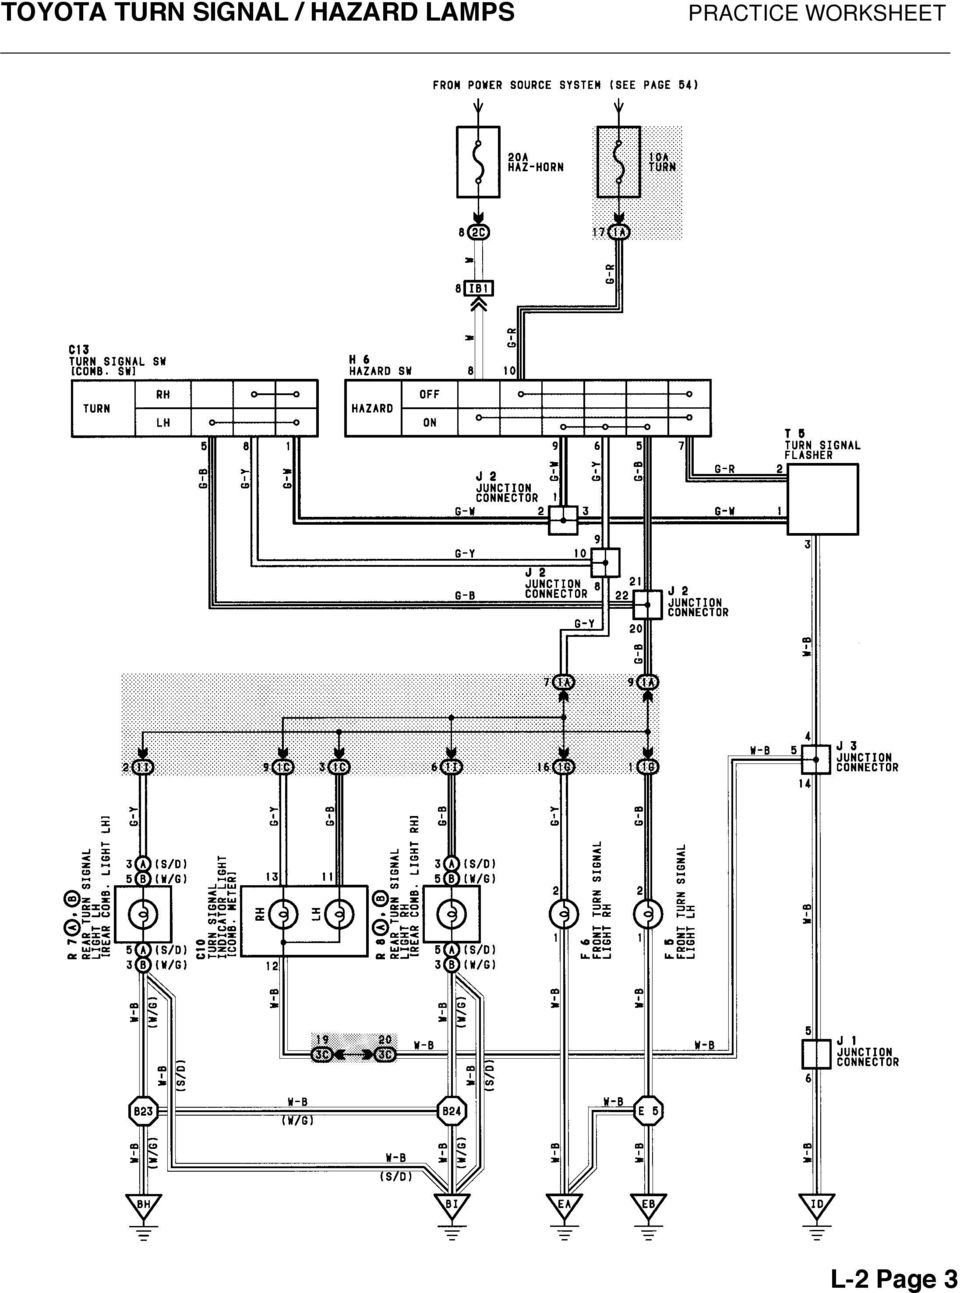 Toyota Previa Headlight Wiring Diagram Electrical Diagrams 1996 Agya Ignition